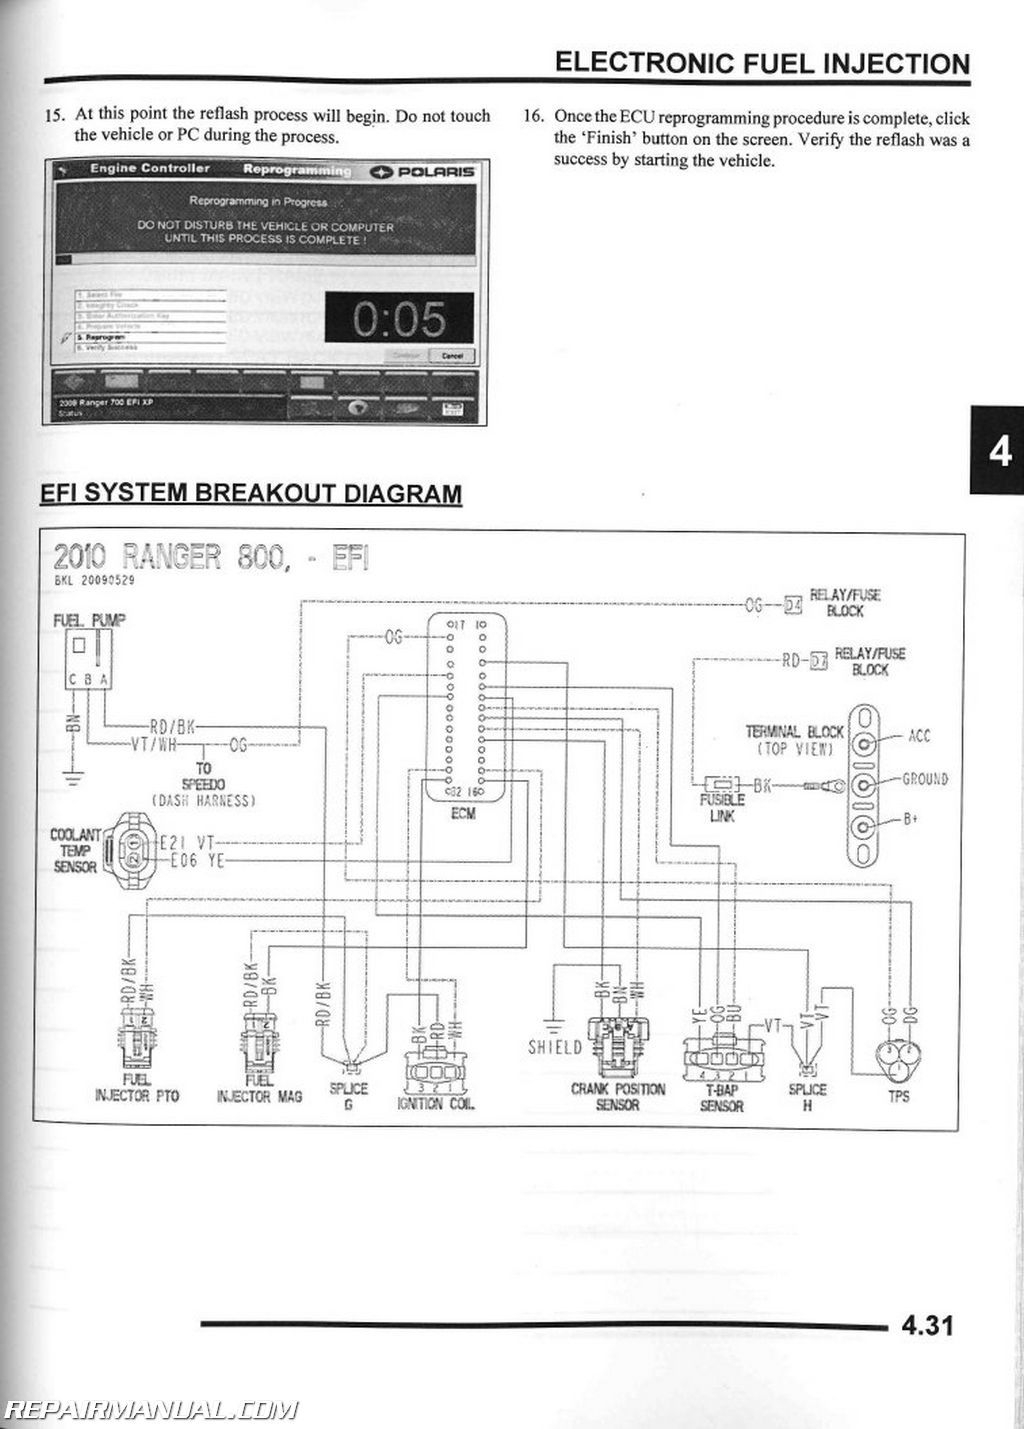 Ld 0328 2011 Polaris Ranger Wiring Diagram Download Diagram